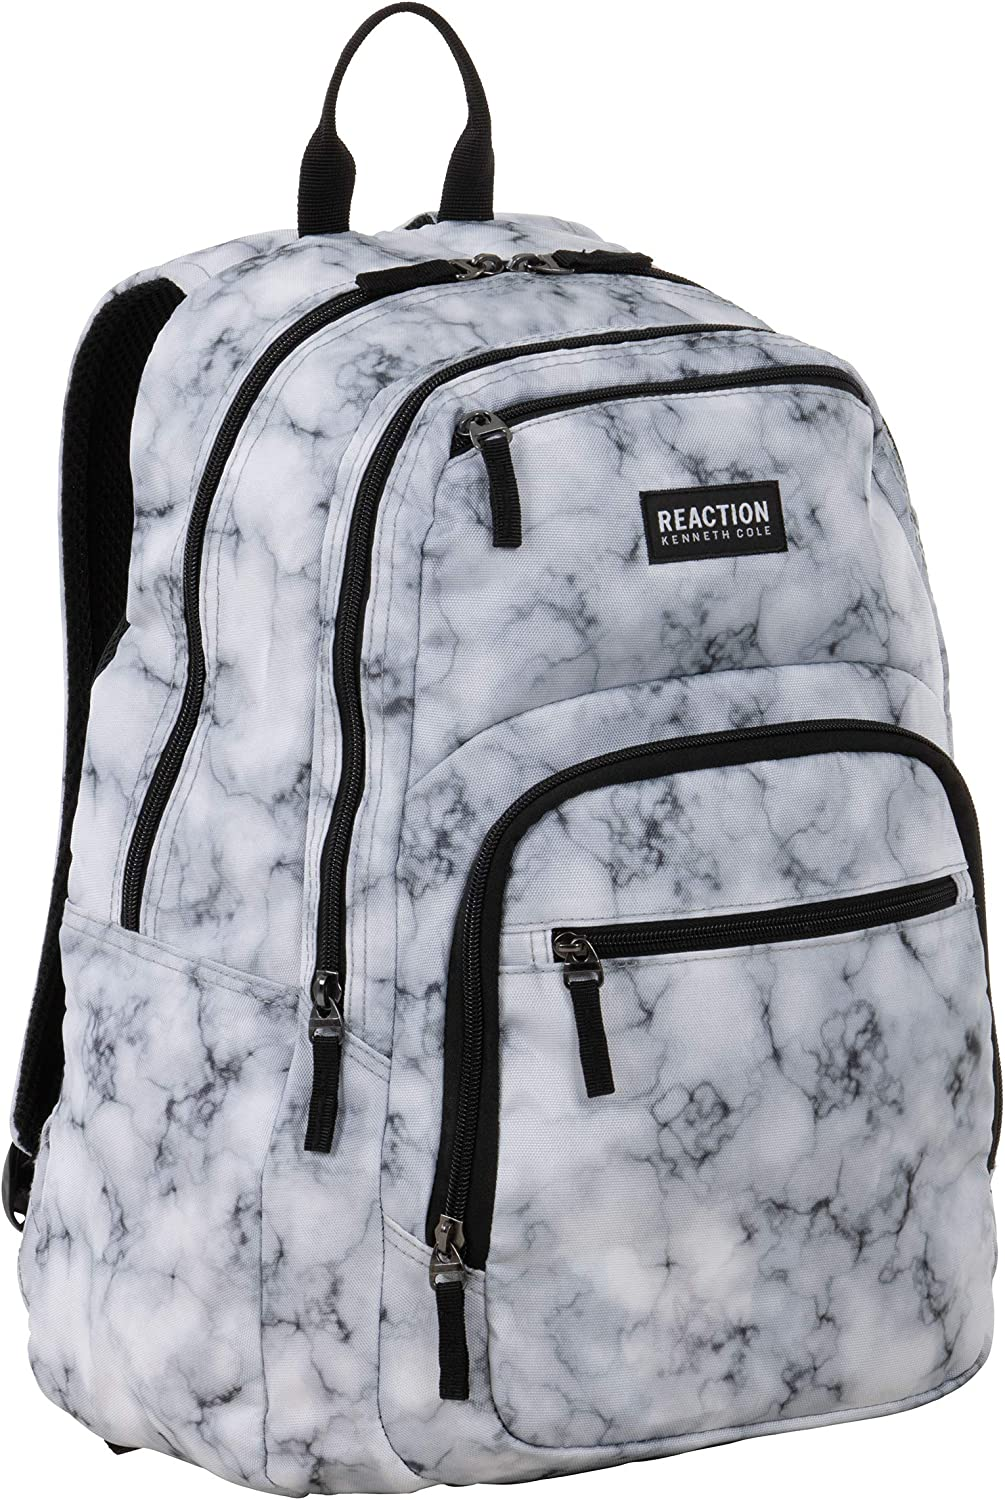 "Kenneth Cole REACTION Printed Dual Compartment 16"" Laptop & Tablet Backpack for School, Travel, Work"